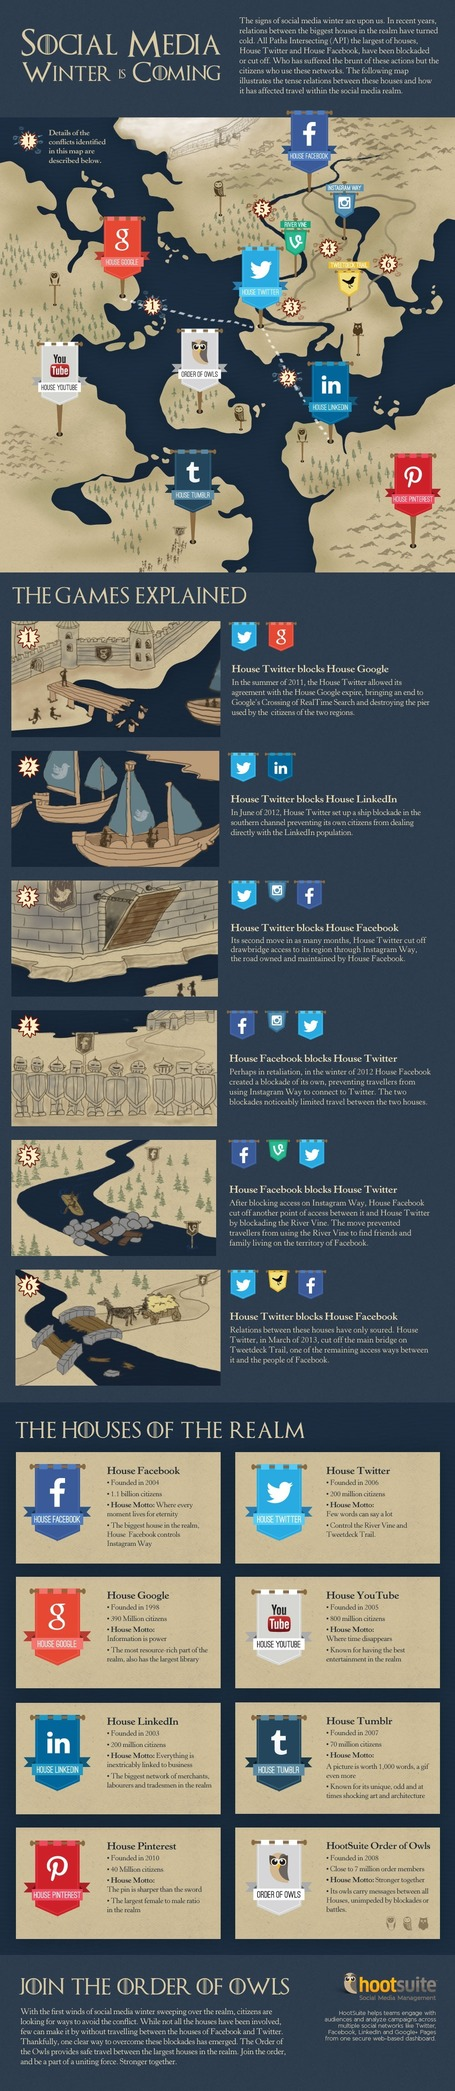 Social Media Wars Told in 'Game of Thrones' Style [INFOGRAPHIC] | Transmedia: Storytelling for the Digital Age | Scoop.it